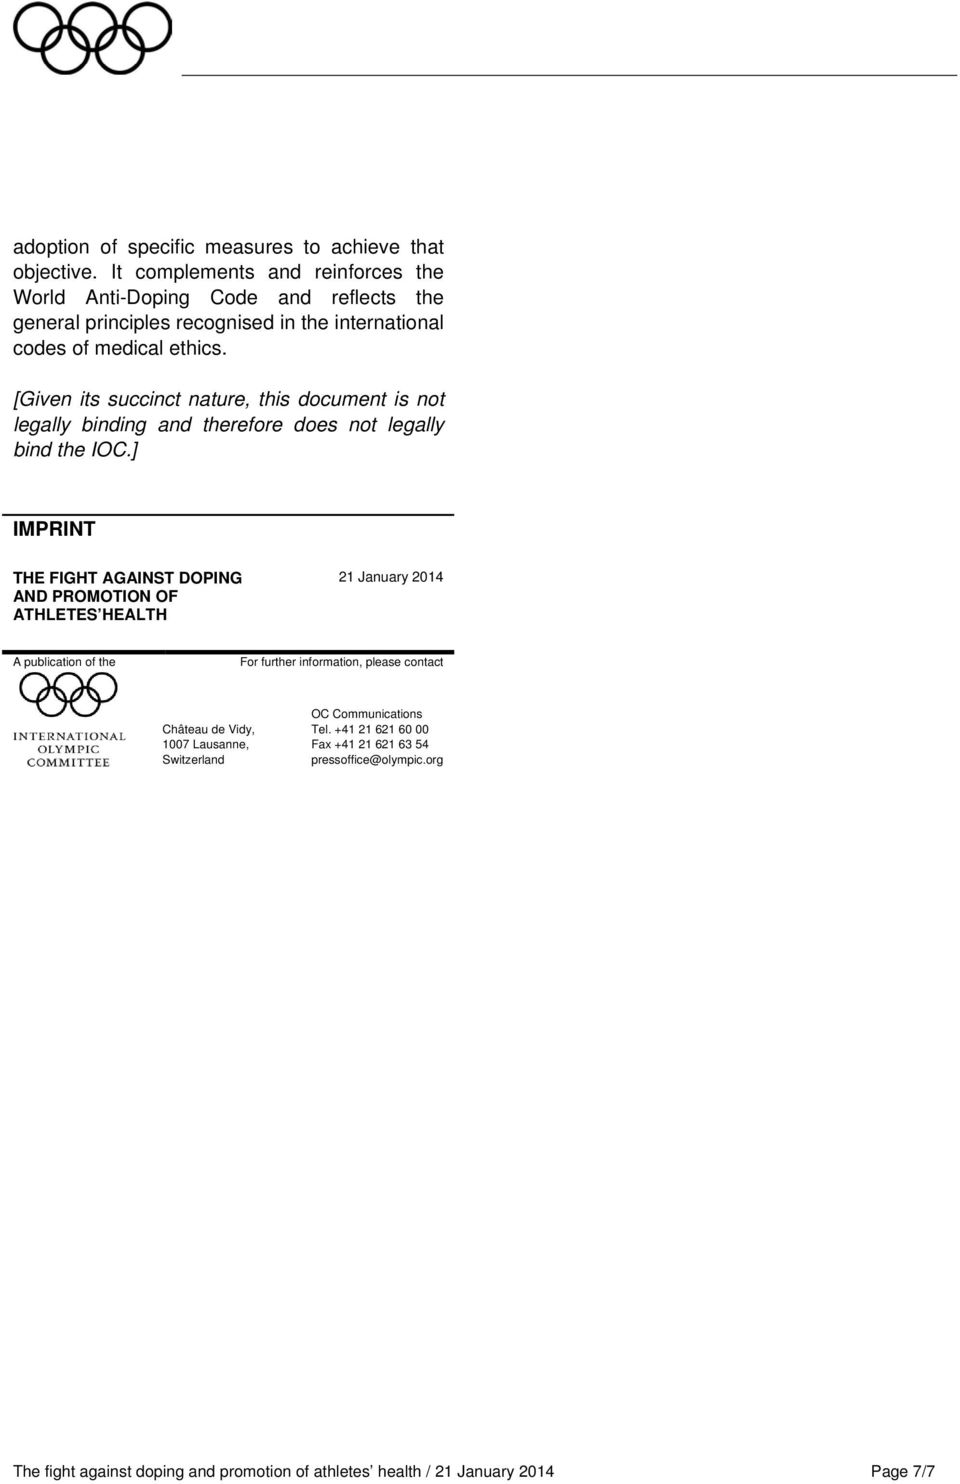 [Given its succinct nature, this document is not legally binding and therefore does not legally bind the IOC.